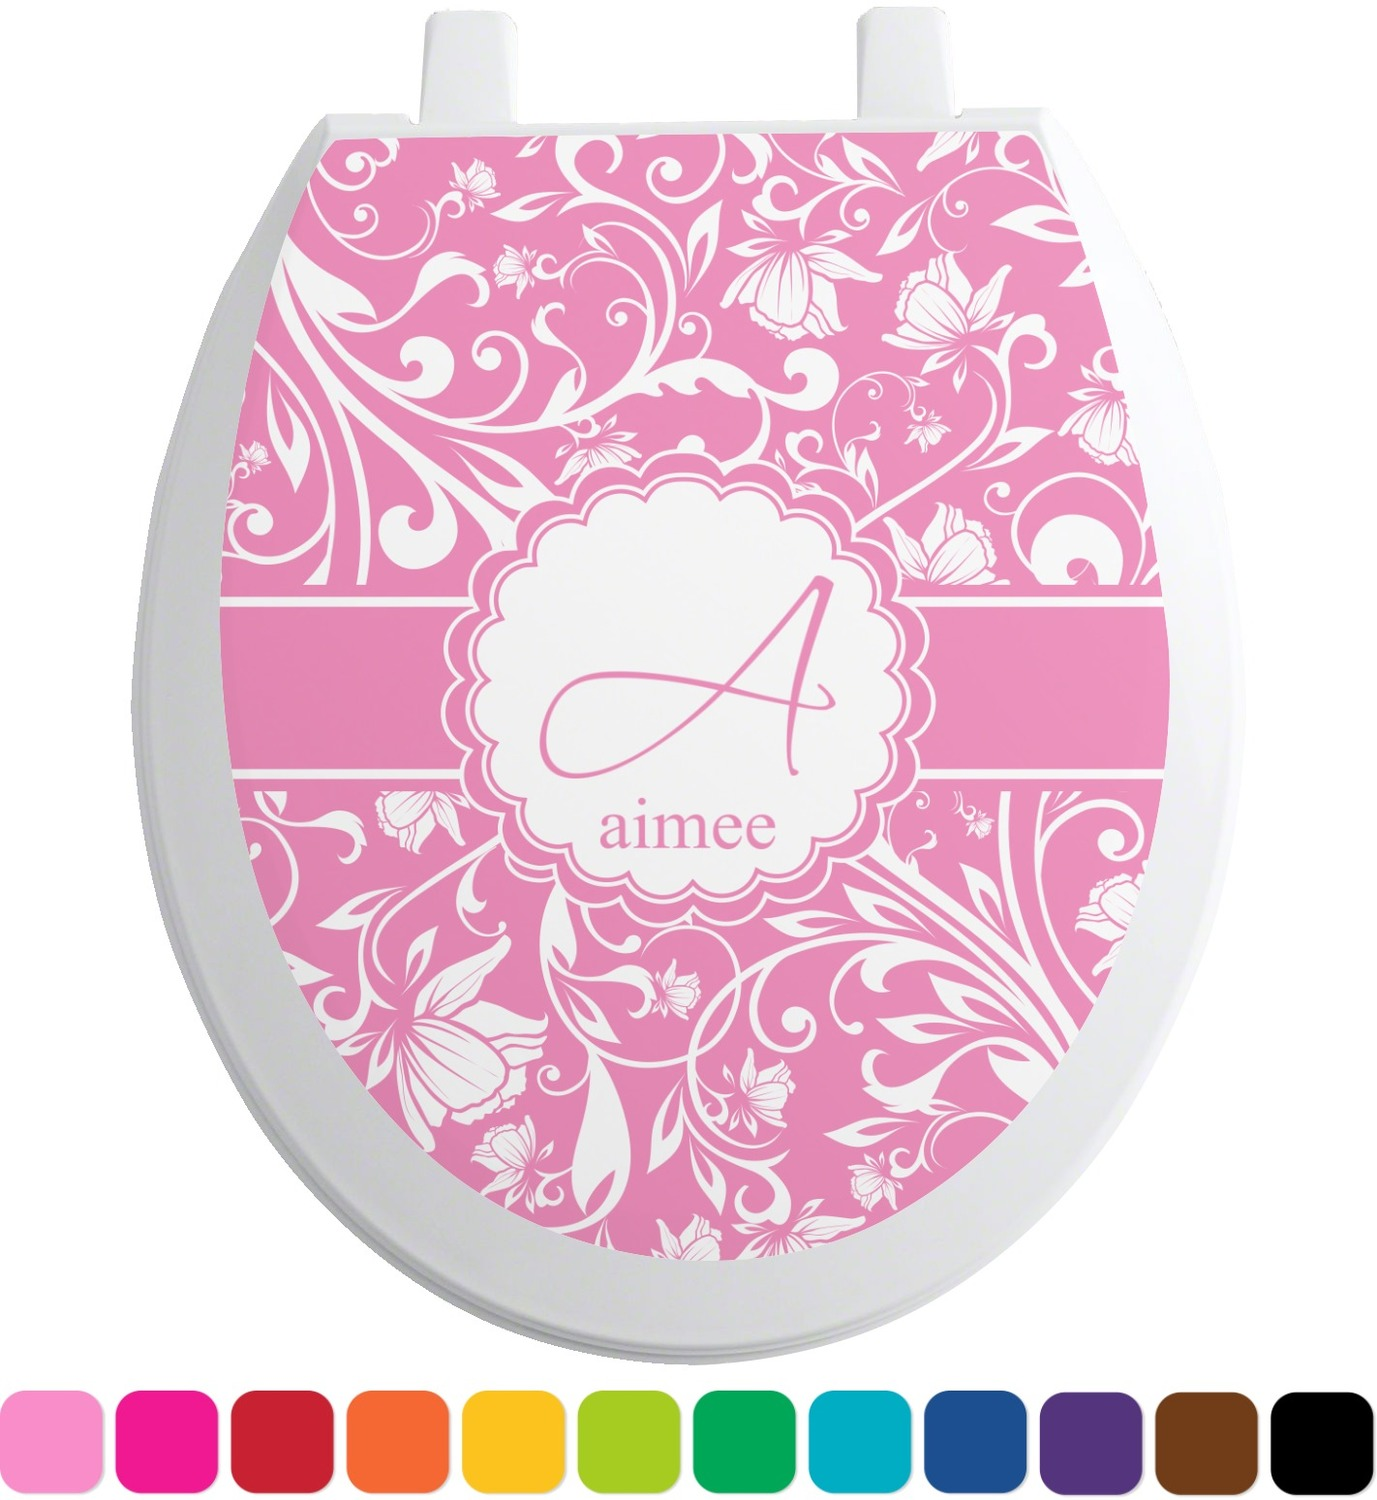 floral vine toilet seat decal personalized you. Black Bedroom Furniture Sets. Home Design Ideas